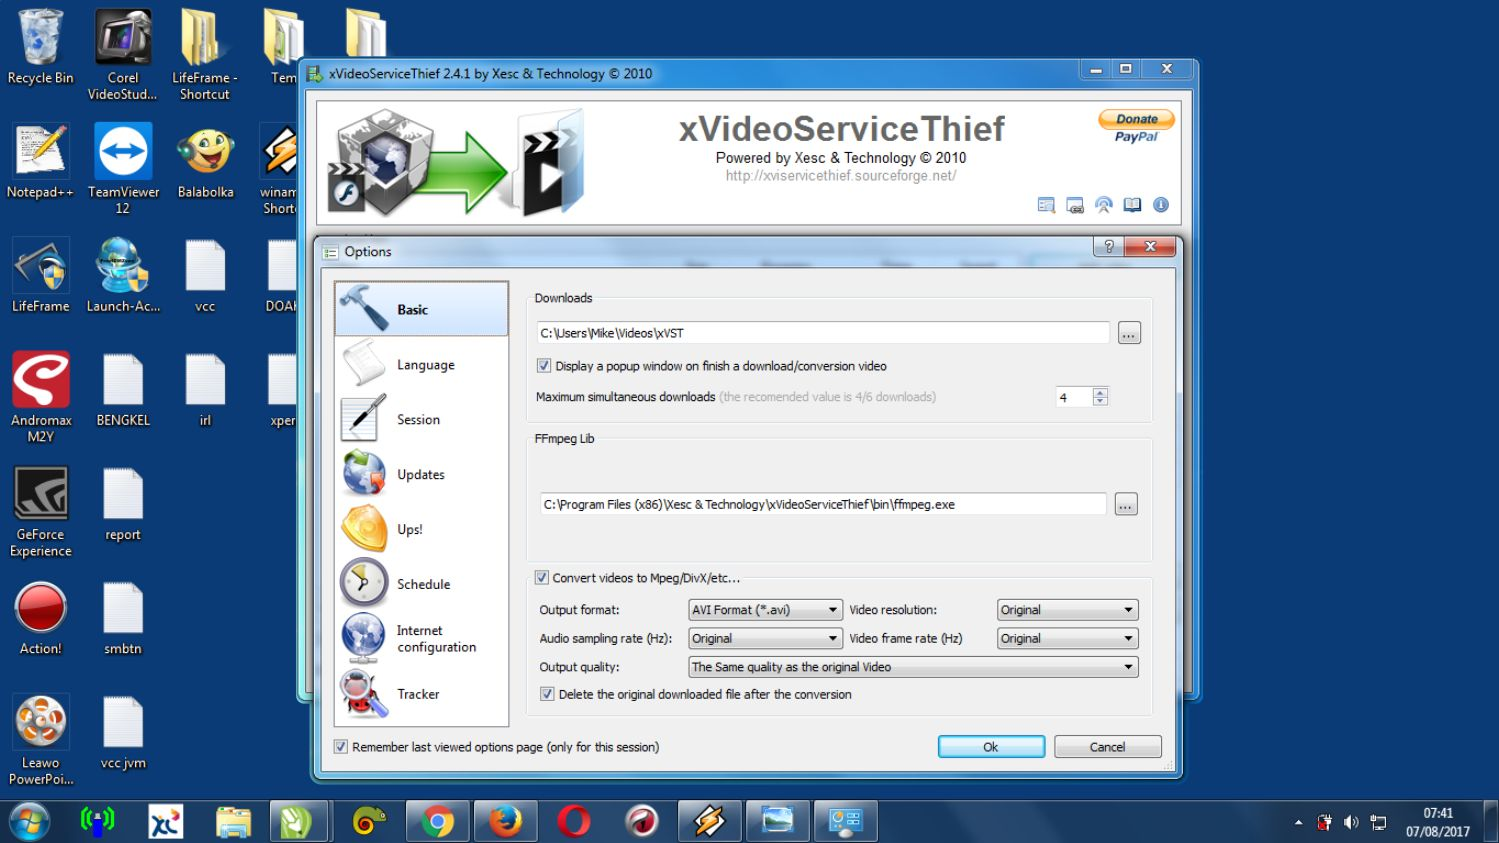 xvideoservicethief 2 4 1 free download for android